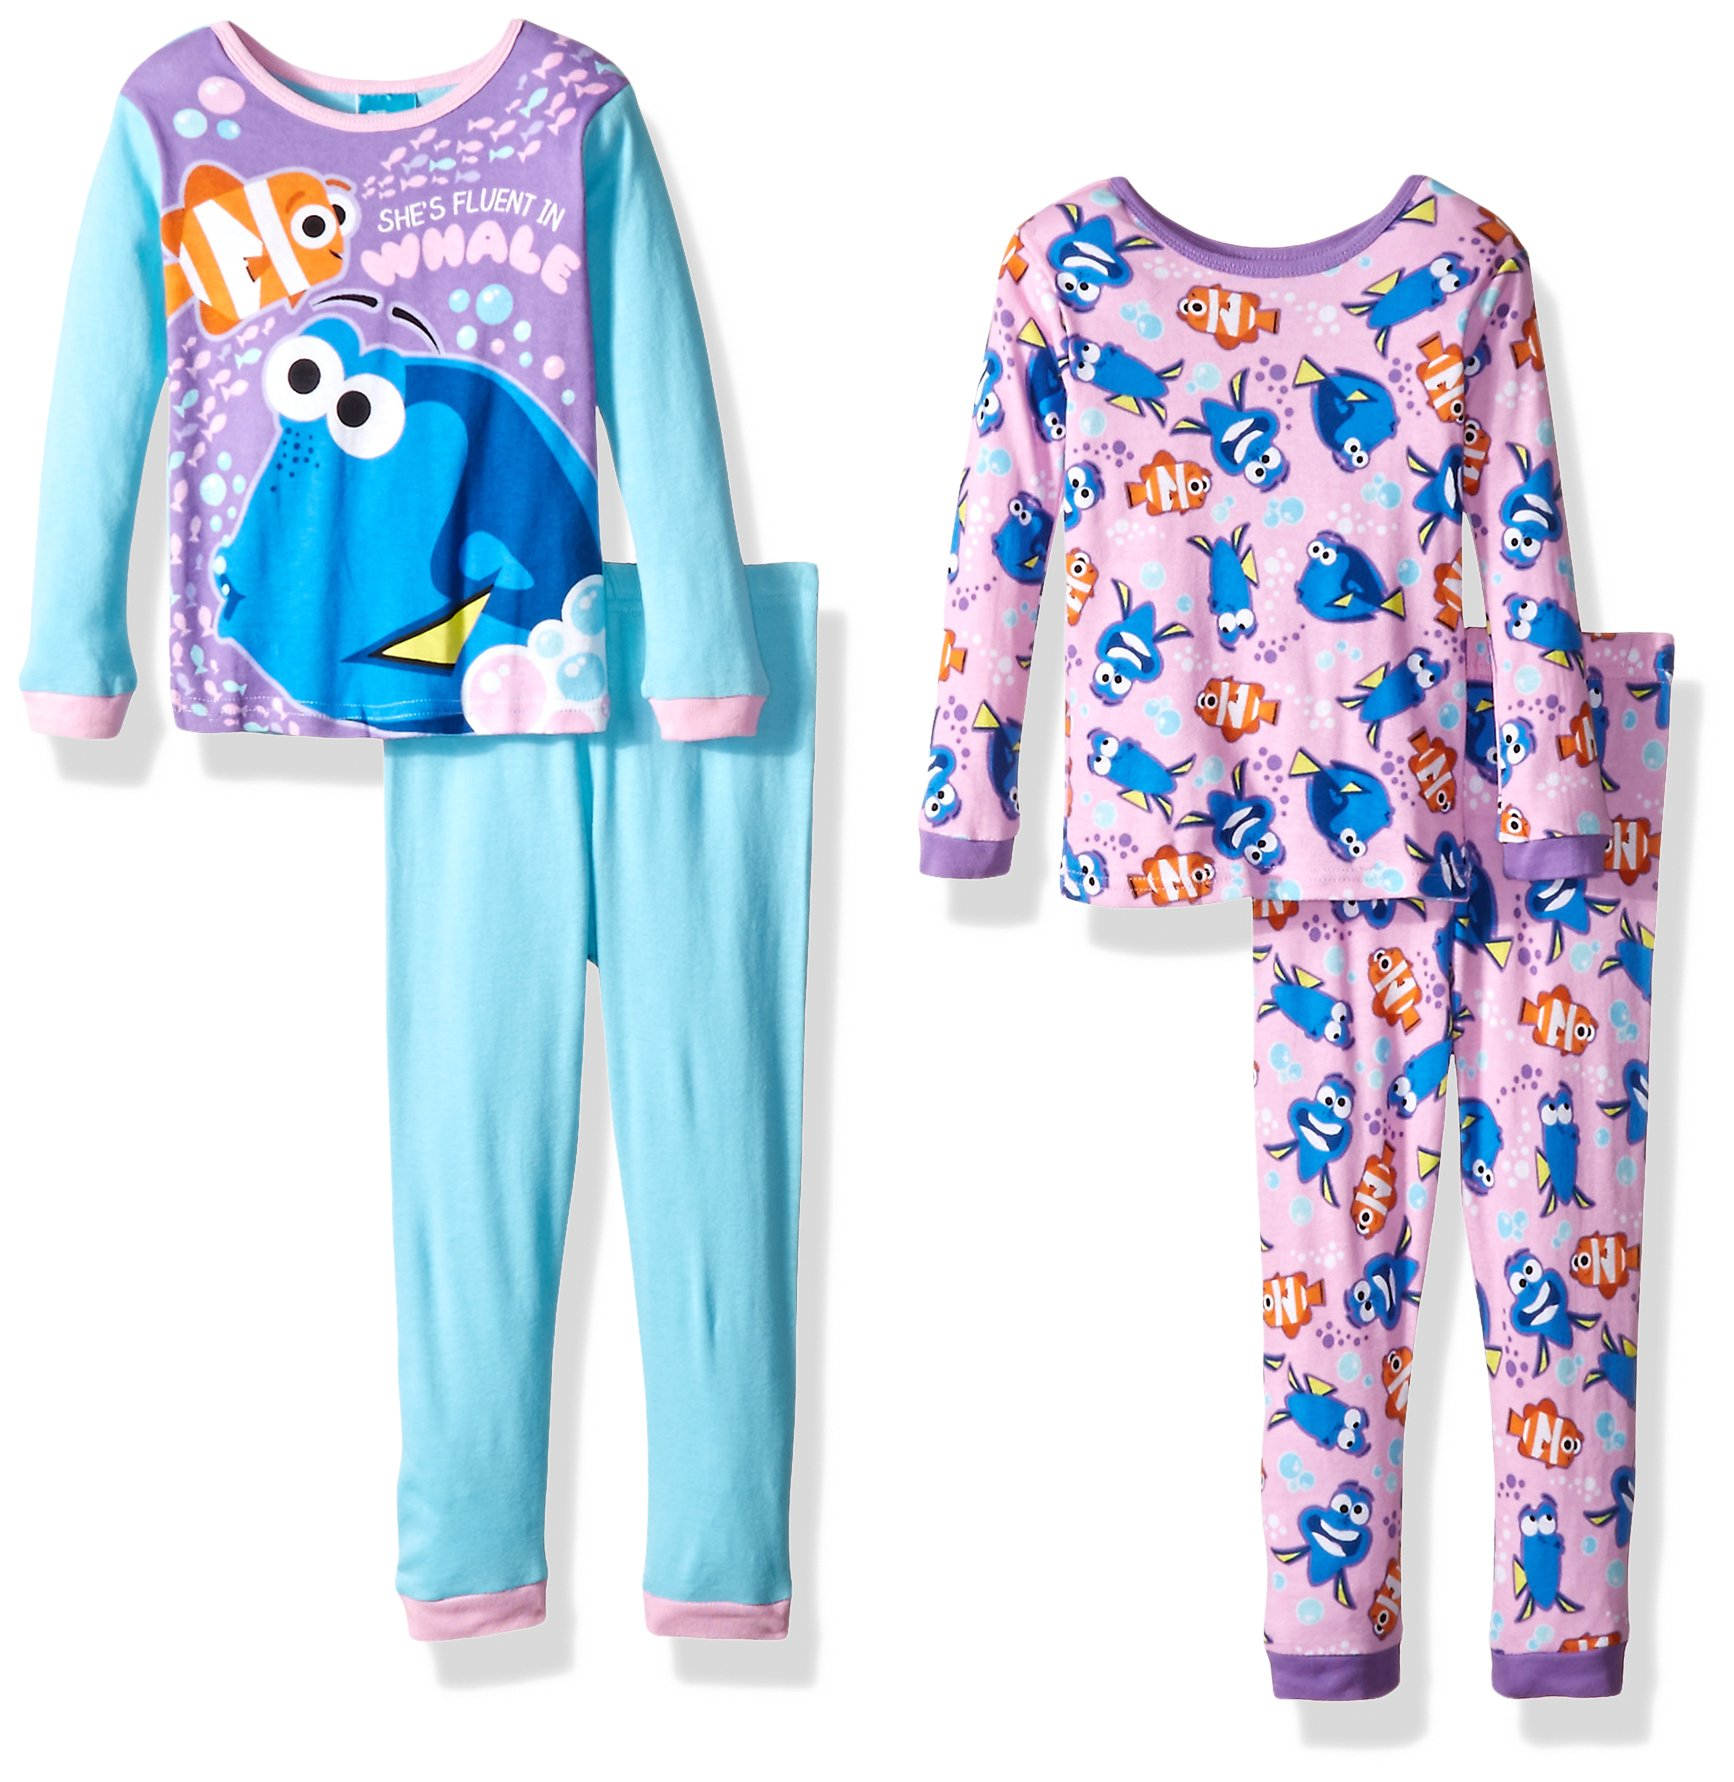 Disney Little Girls' Finding Dory 4-Piece Cotton Pajama Set, Pink, 4